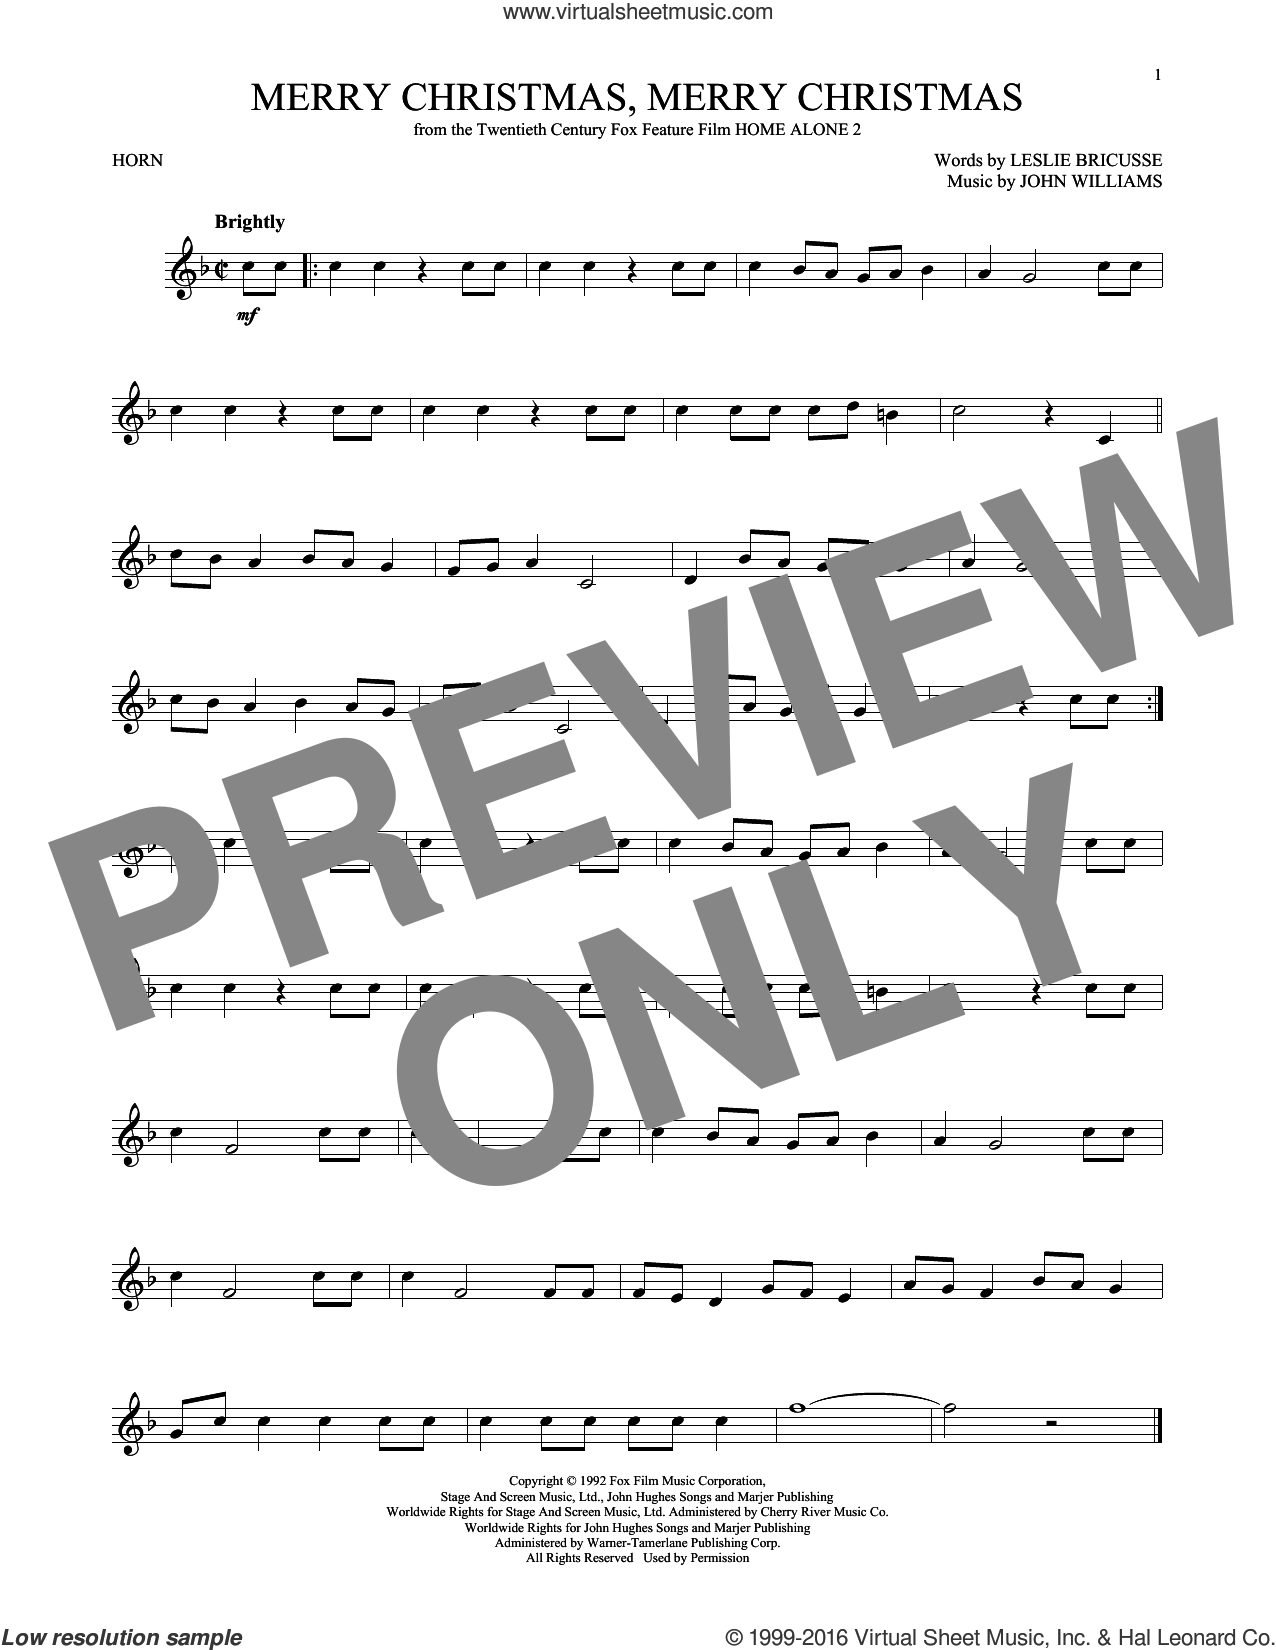 Merry Christmas, Merry Christmas sheet music for horn solo by John Williams and Leslie Bricusse, intermediate skill level